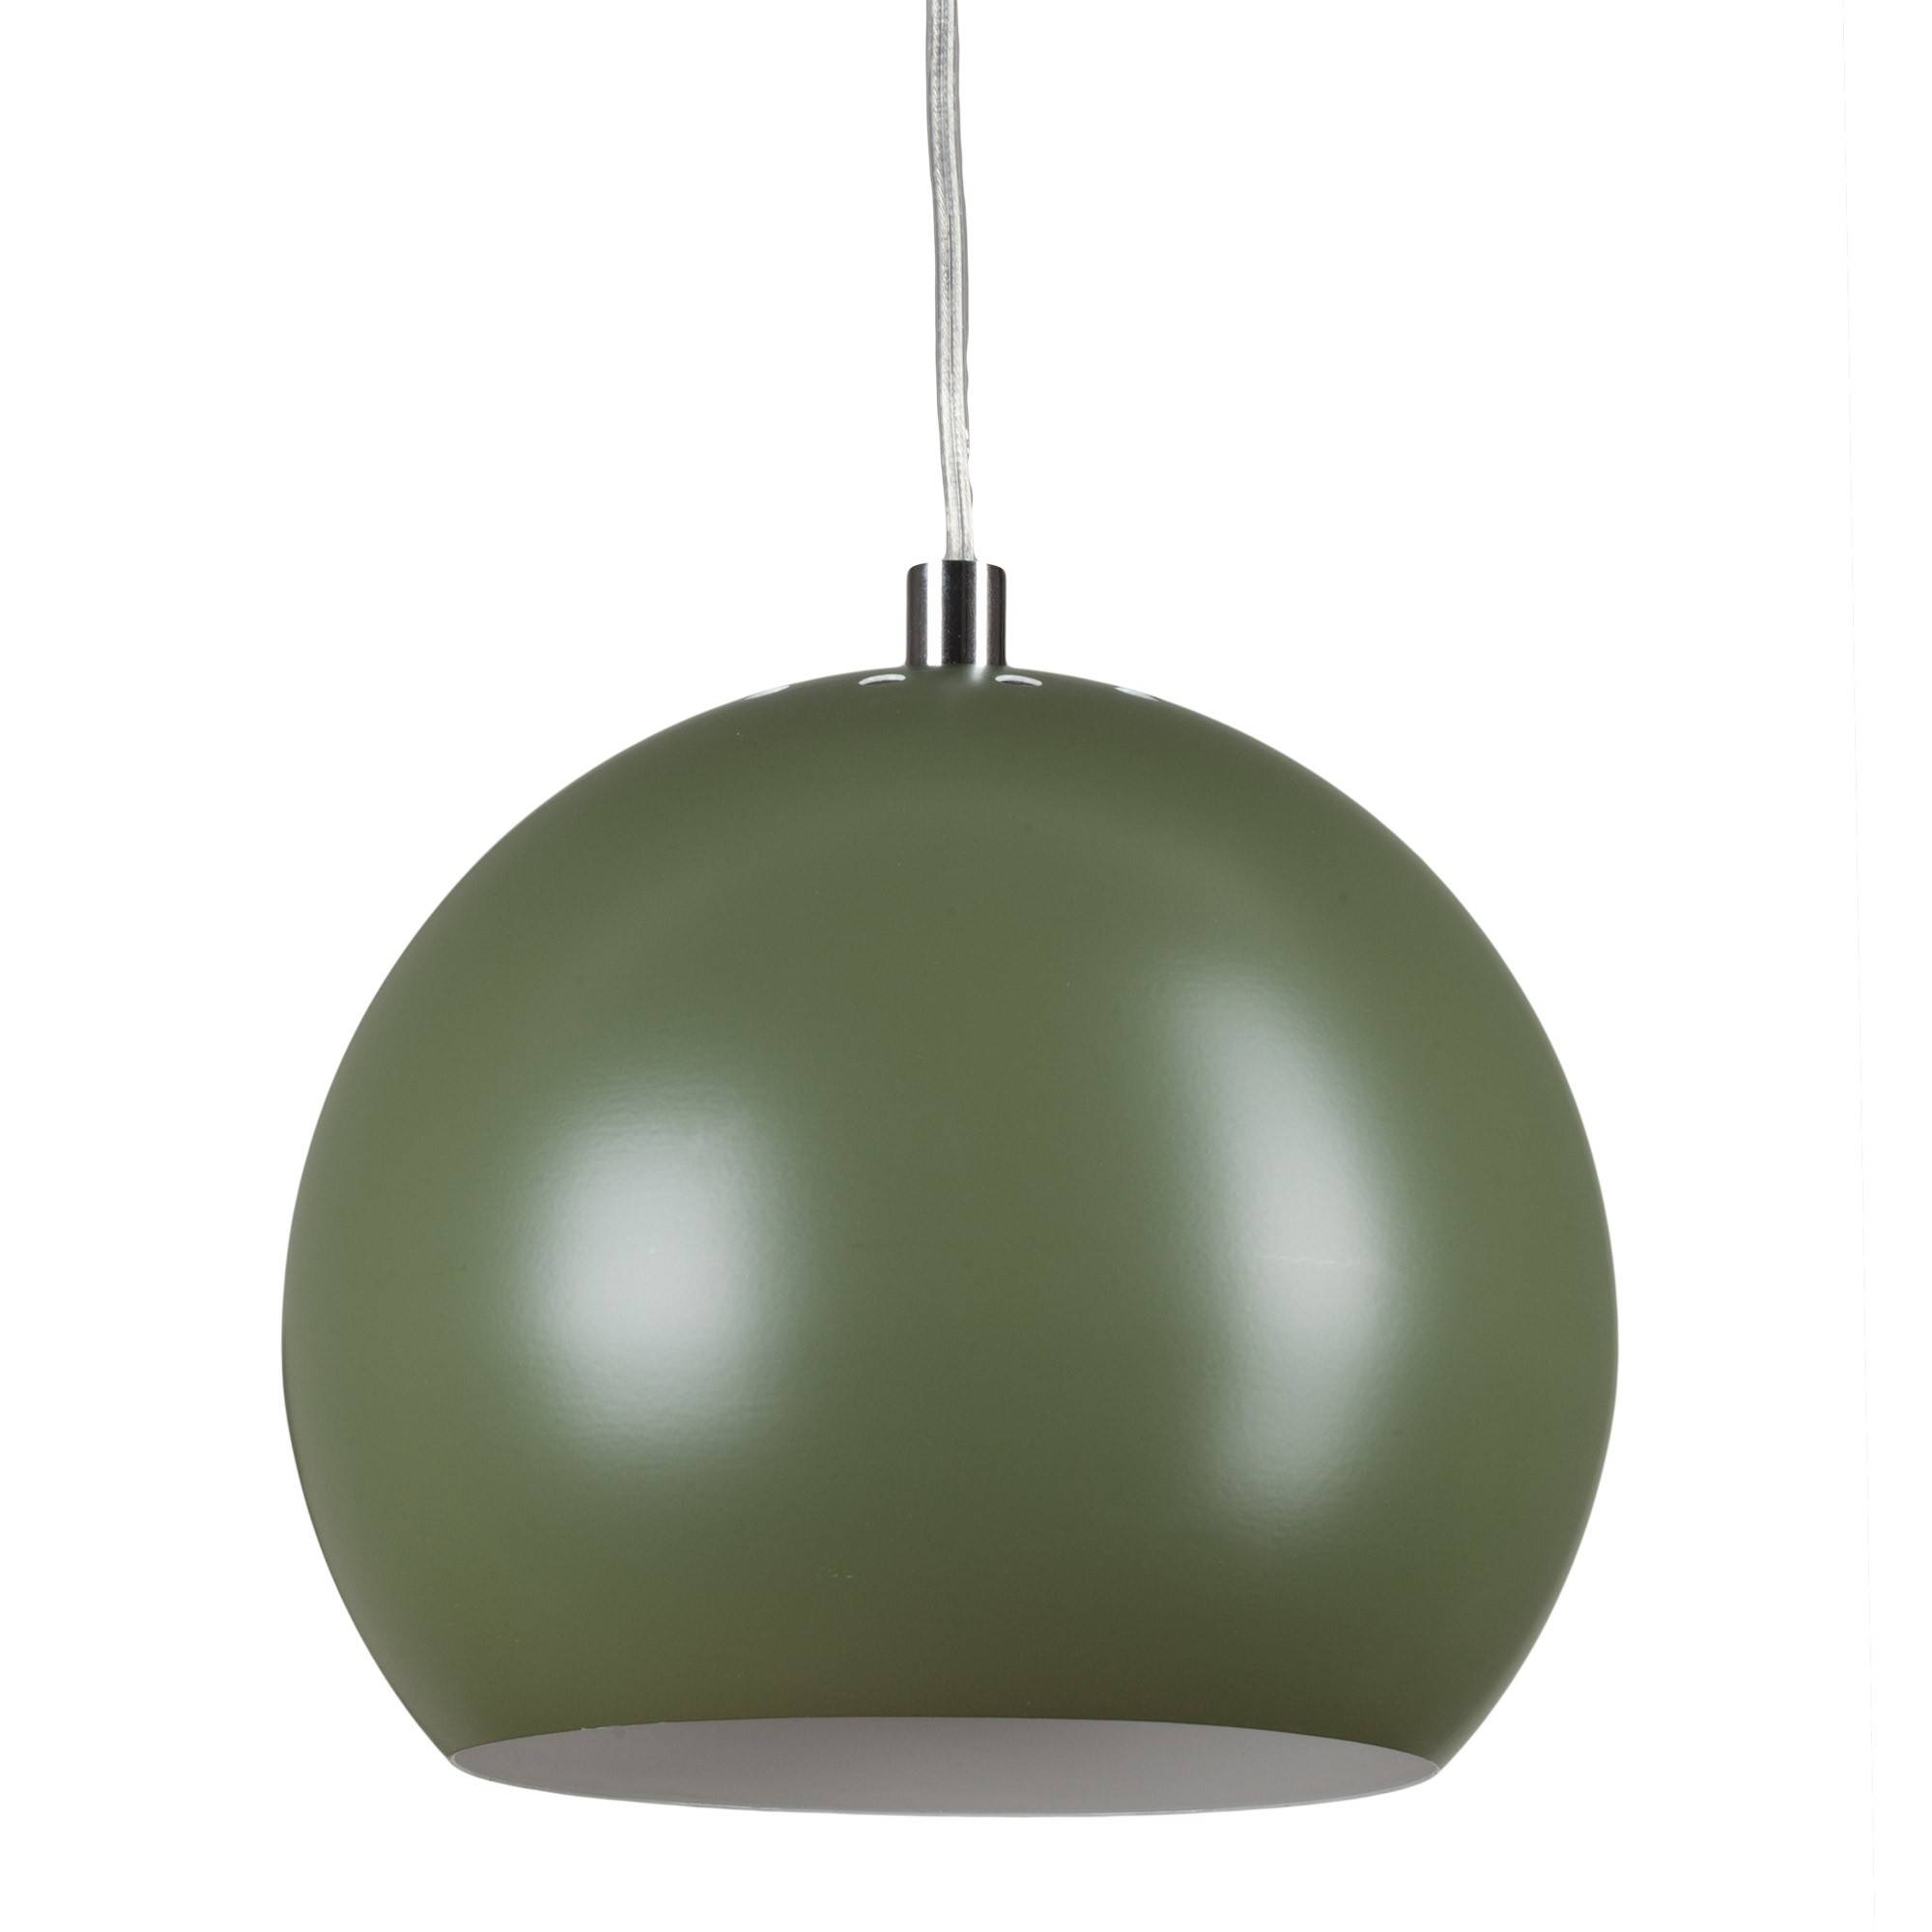 Fixtures Light : Surprising Lime Green Pendant Light, Purple regarding Lime Green Pendant Lights (Image 6 of 15)